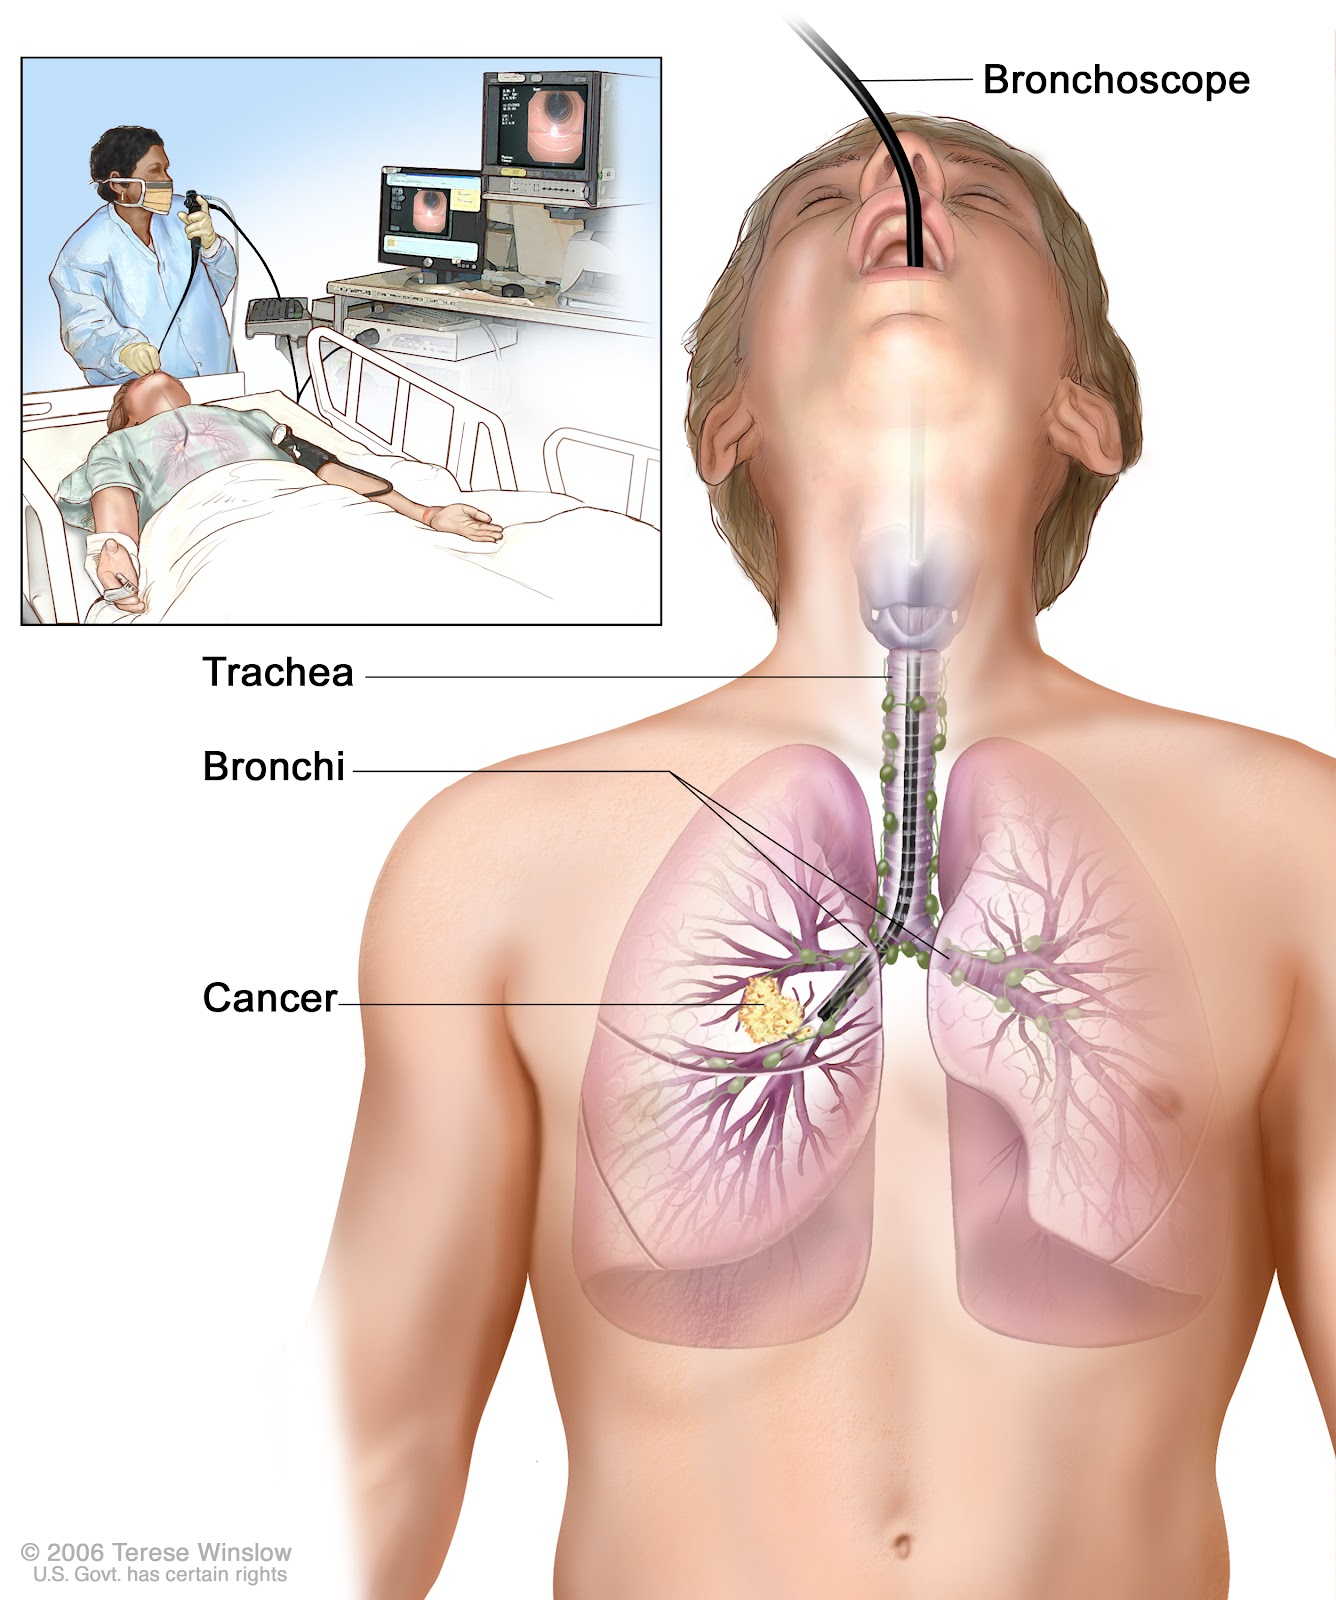 signs of mesothelioma lung cancer mesothelioma solicitors1 signs of mesothelioma lung cancer